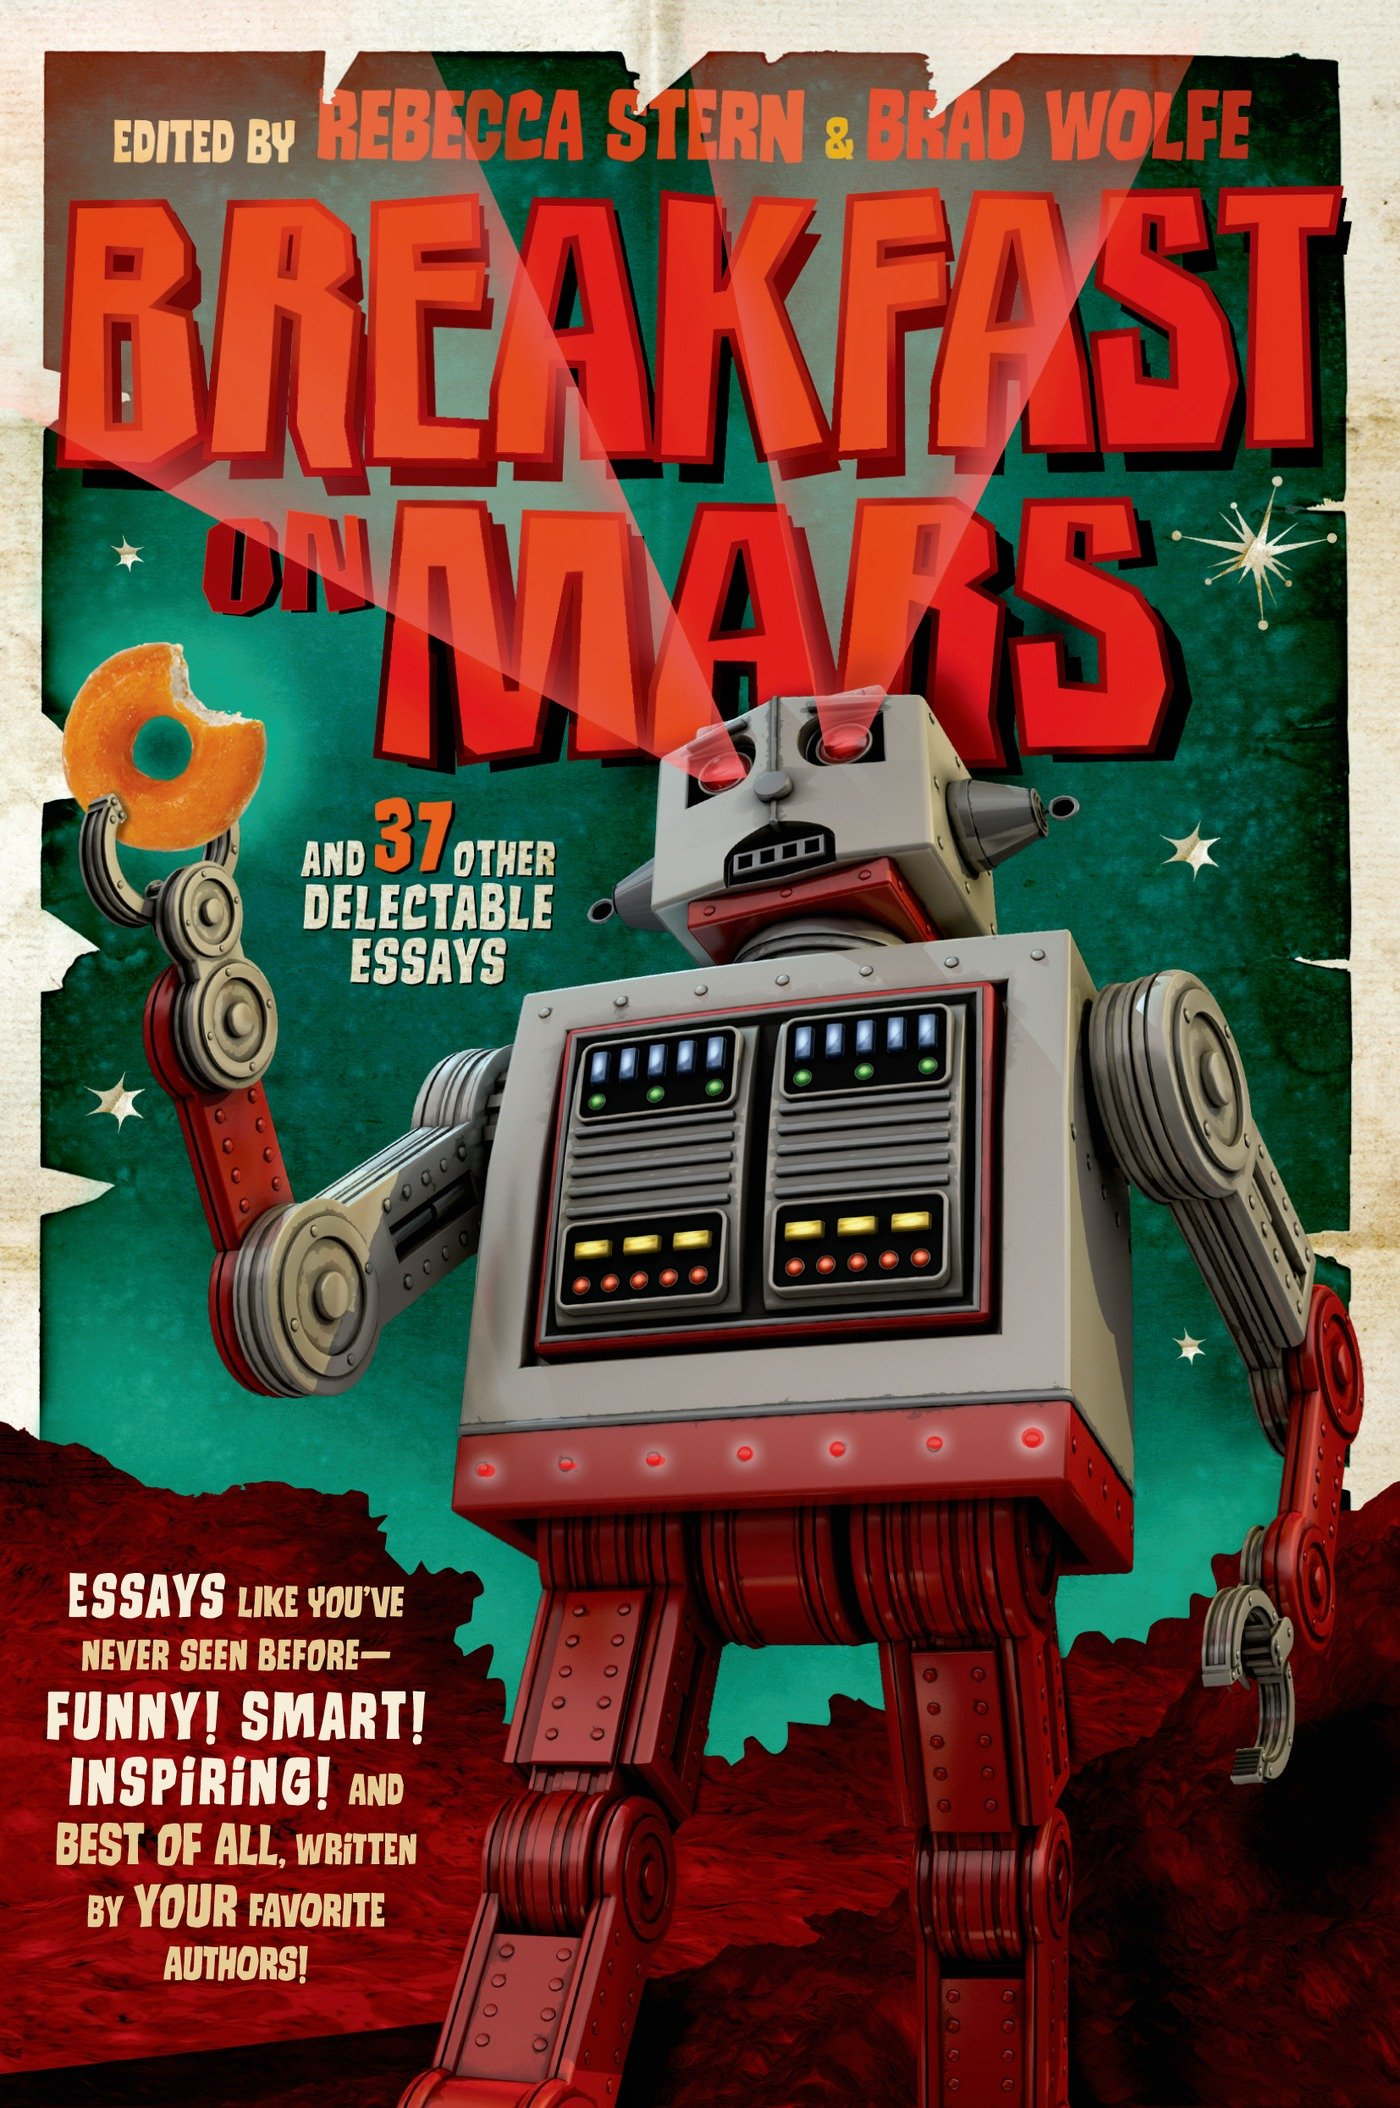 breakfast on mars and other delectable essays your favorite breakfast on mars and 37 other delectable essays your favorite authors take a stab at the dreaded essay assignment brad wolfe rebecca stern